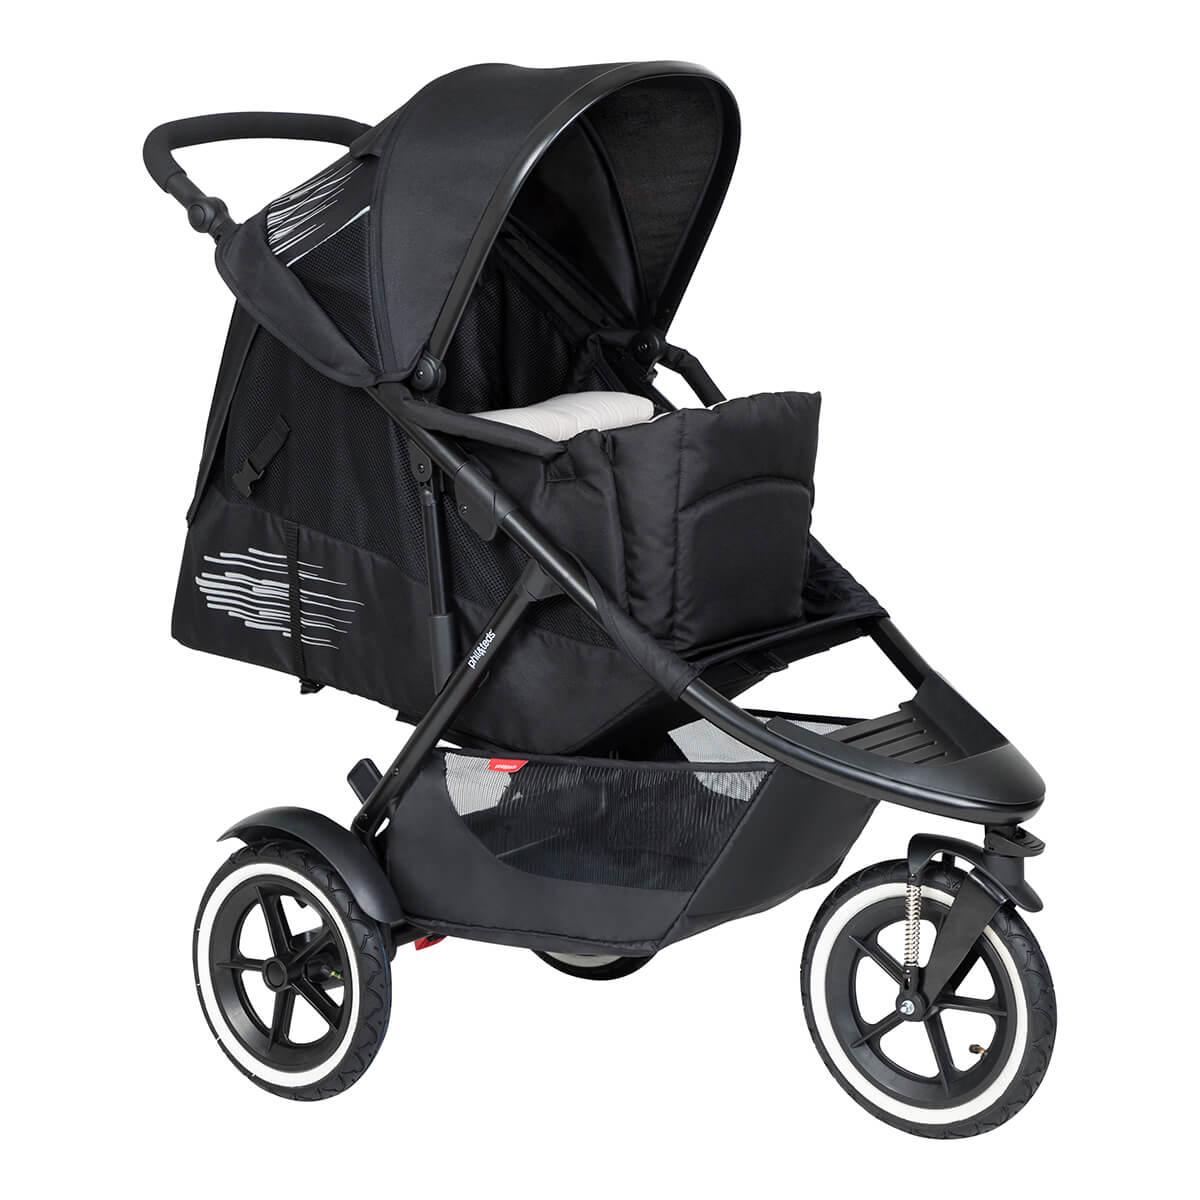 https://cdn.accentuate.io/4343443488802/19437753204914/philteds-sport-buggy-with-cocoon-full-recline-v1626482671028.jpg?1200x1200